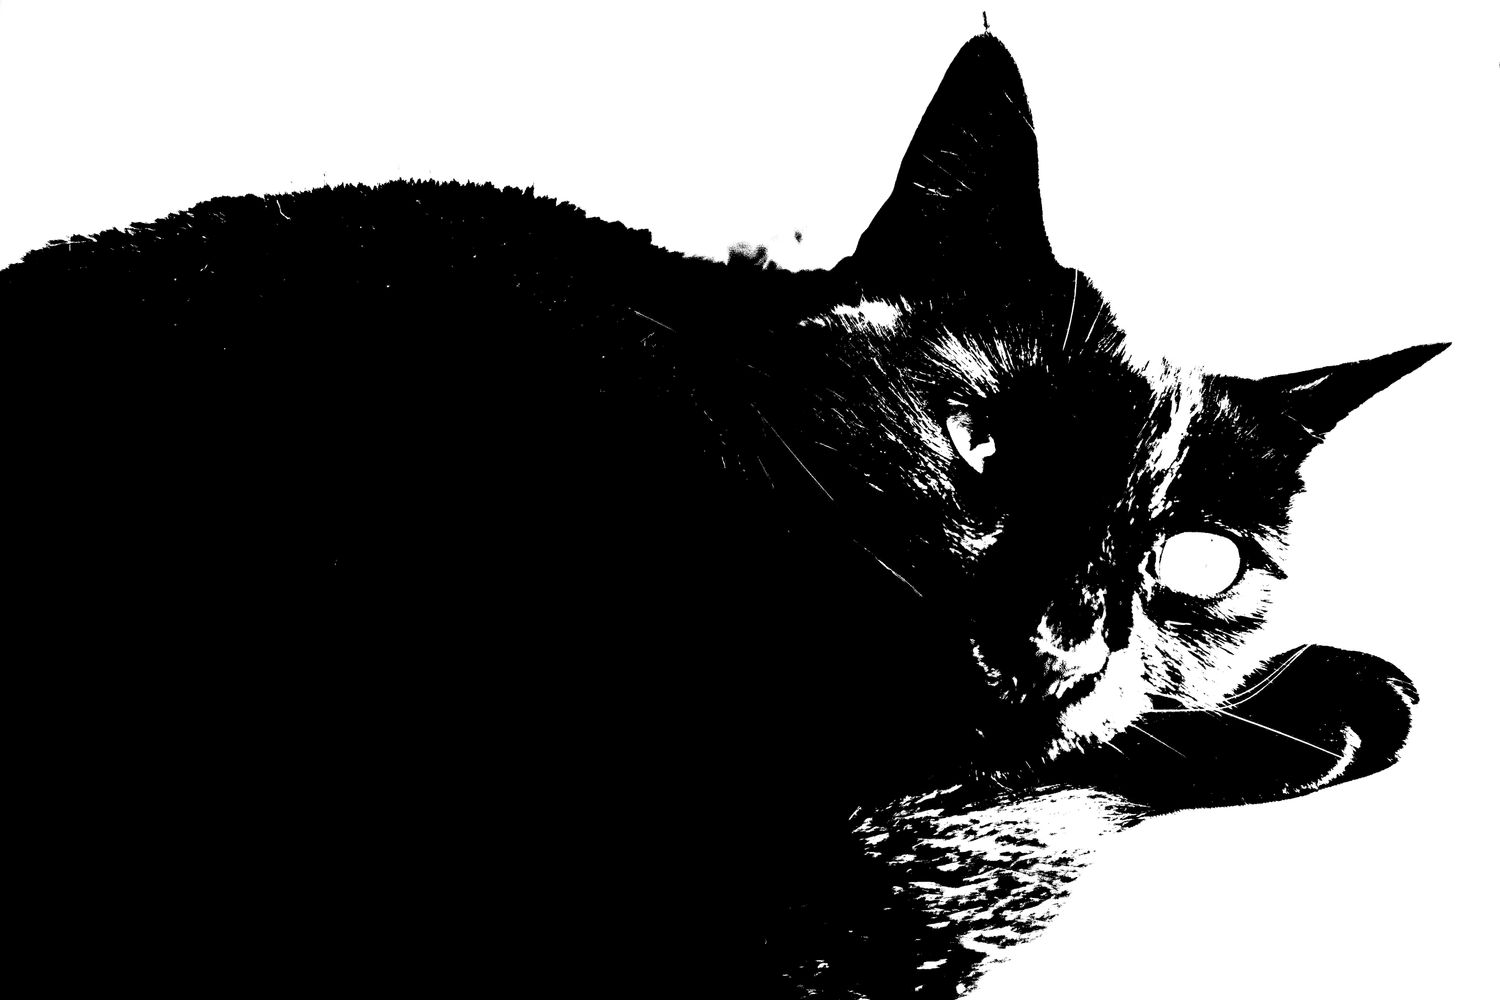 - The black cat with an eyeball, Athens, GRC, 2020